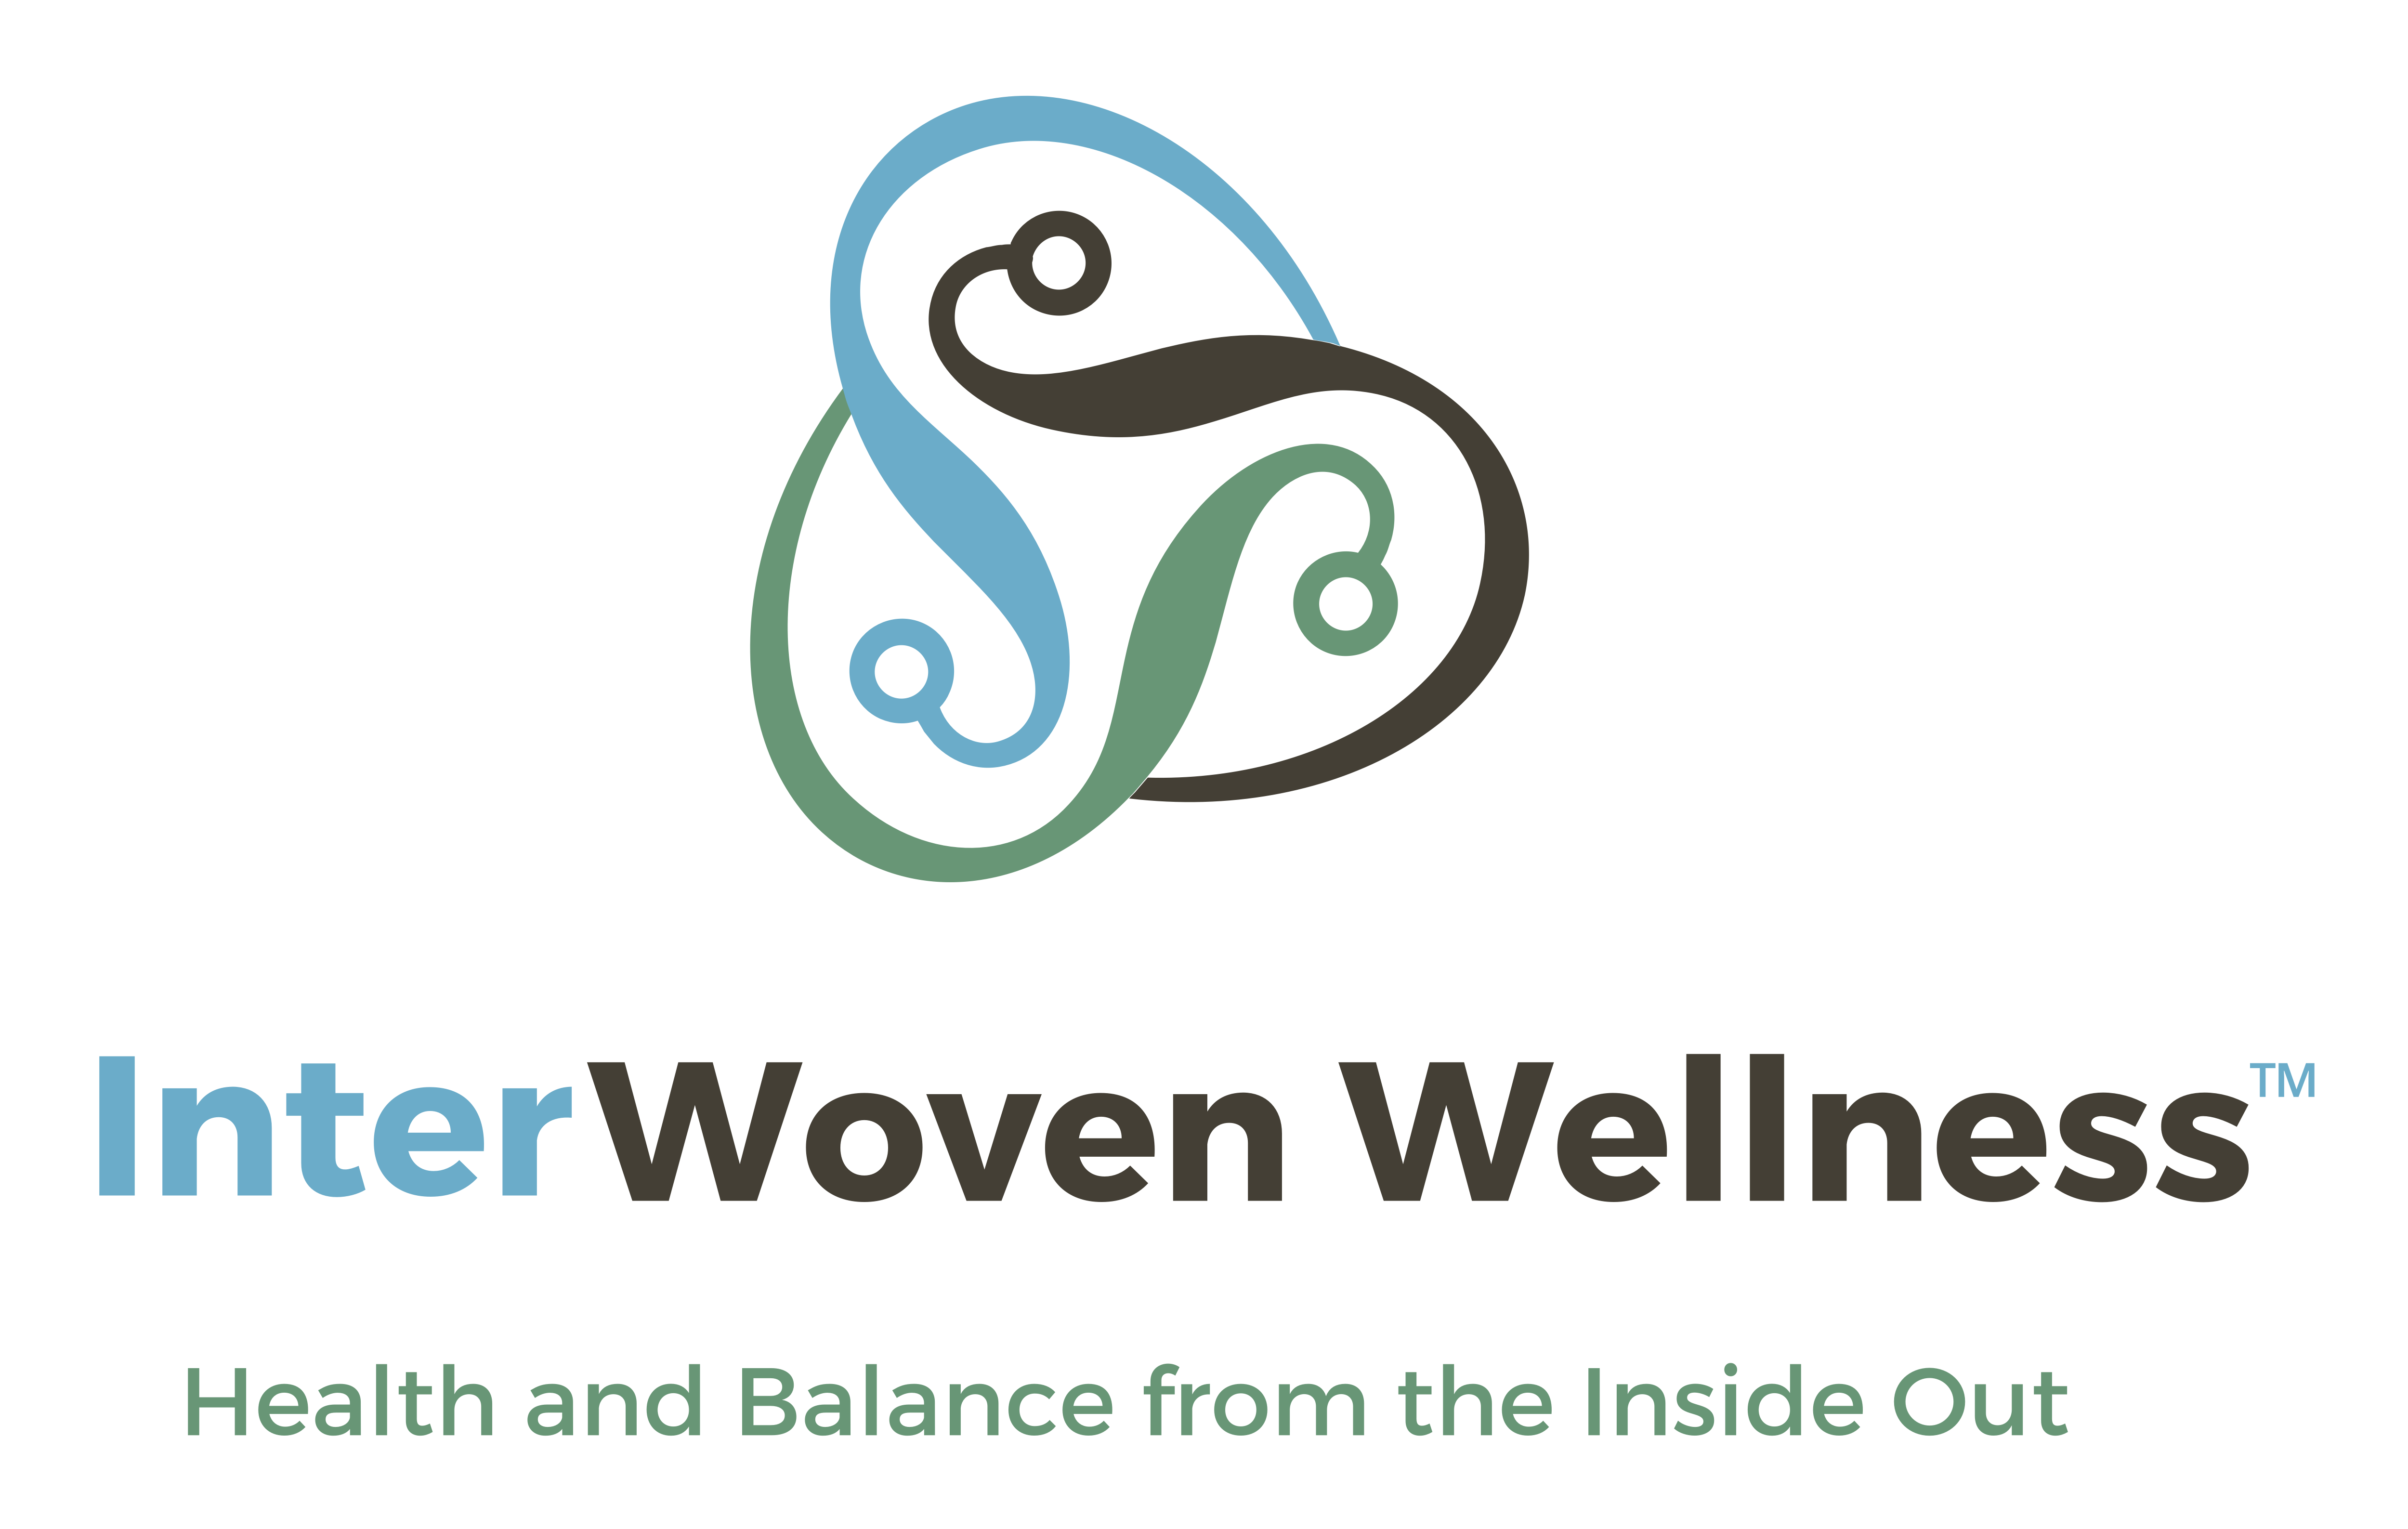 Interwoven Wellness™